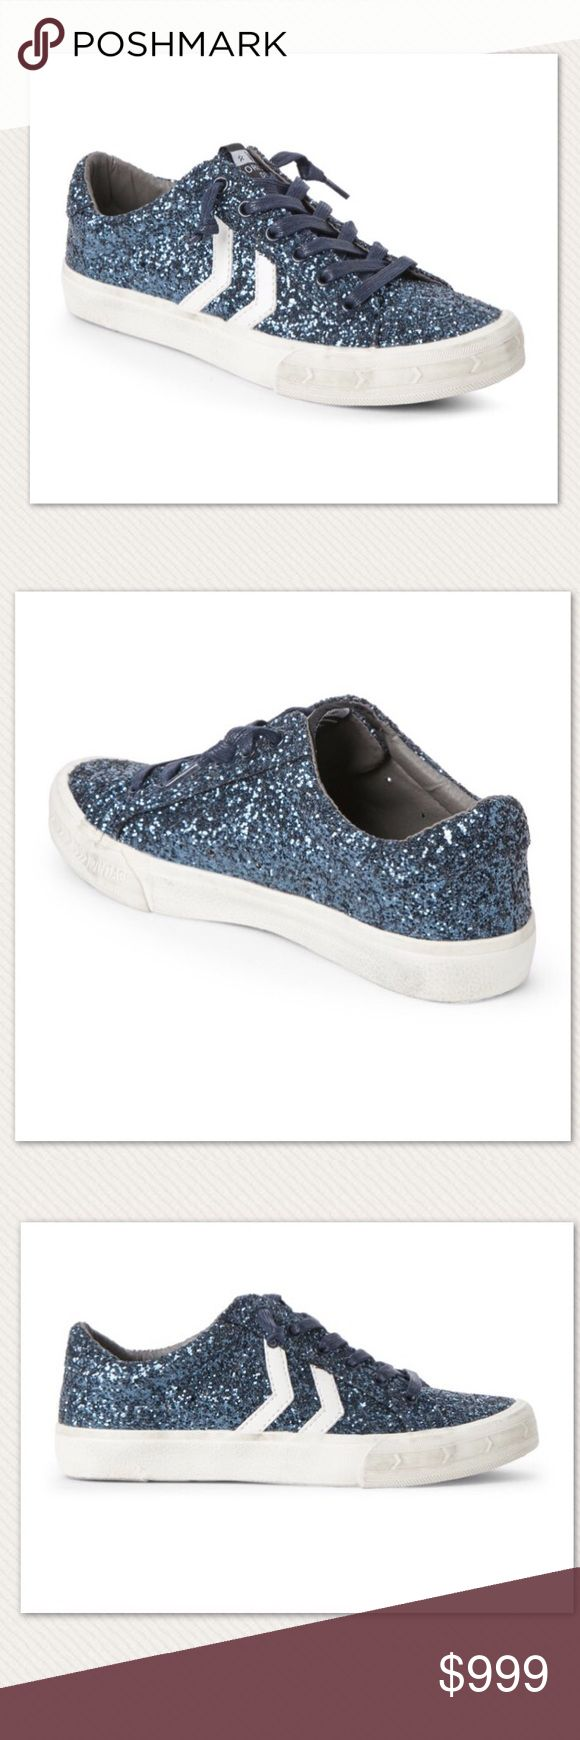 Vintage Havana Sparkle Sneakers Authentic new with box Vintage Havana Future Sparkle Navy Low Top Sneakers. Glitter upper, round toe, faux leather overlays, lace up closure Interior lining, lightly cushioned insole, padded collar, vintage style sole Accompanied by dust bag Man made upper/lining/sole Imported. Women's Size 9. ❗️No Trade❗️ Vintage Havana Shoes Sneakers